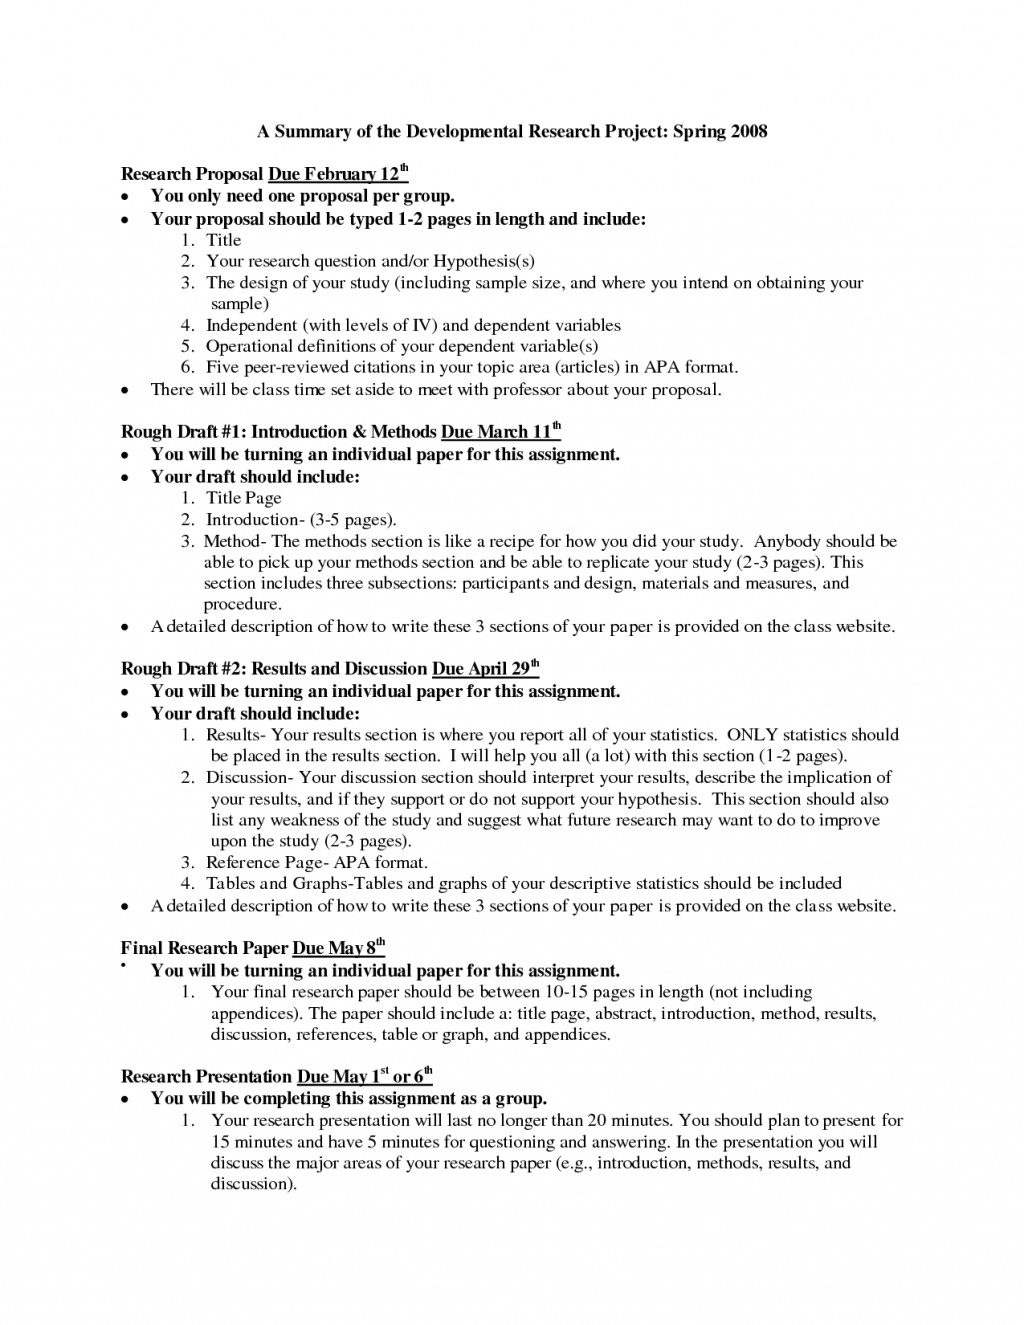 012 Good Research Paper Topic Psychology Undergraduate Resume Unique Sample Singular Topics 2019 Ideas In Business And Finance For College Students Large